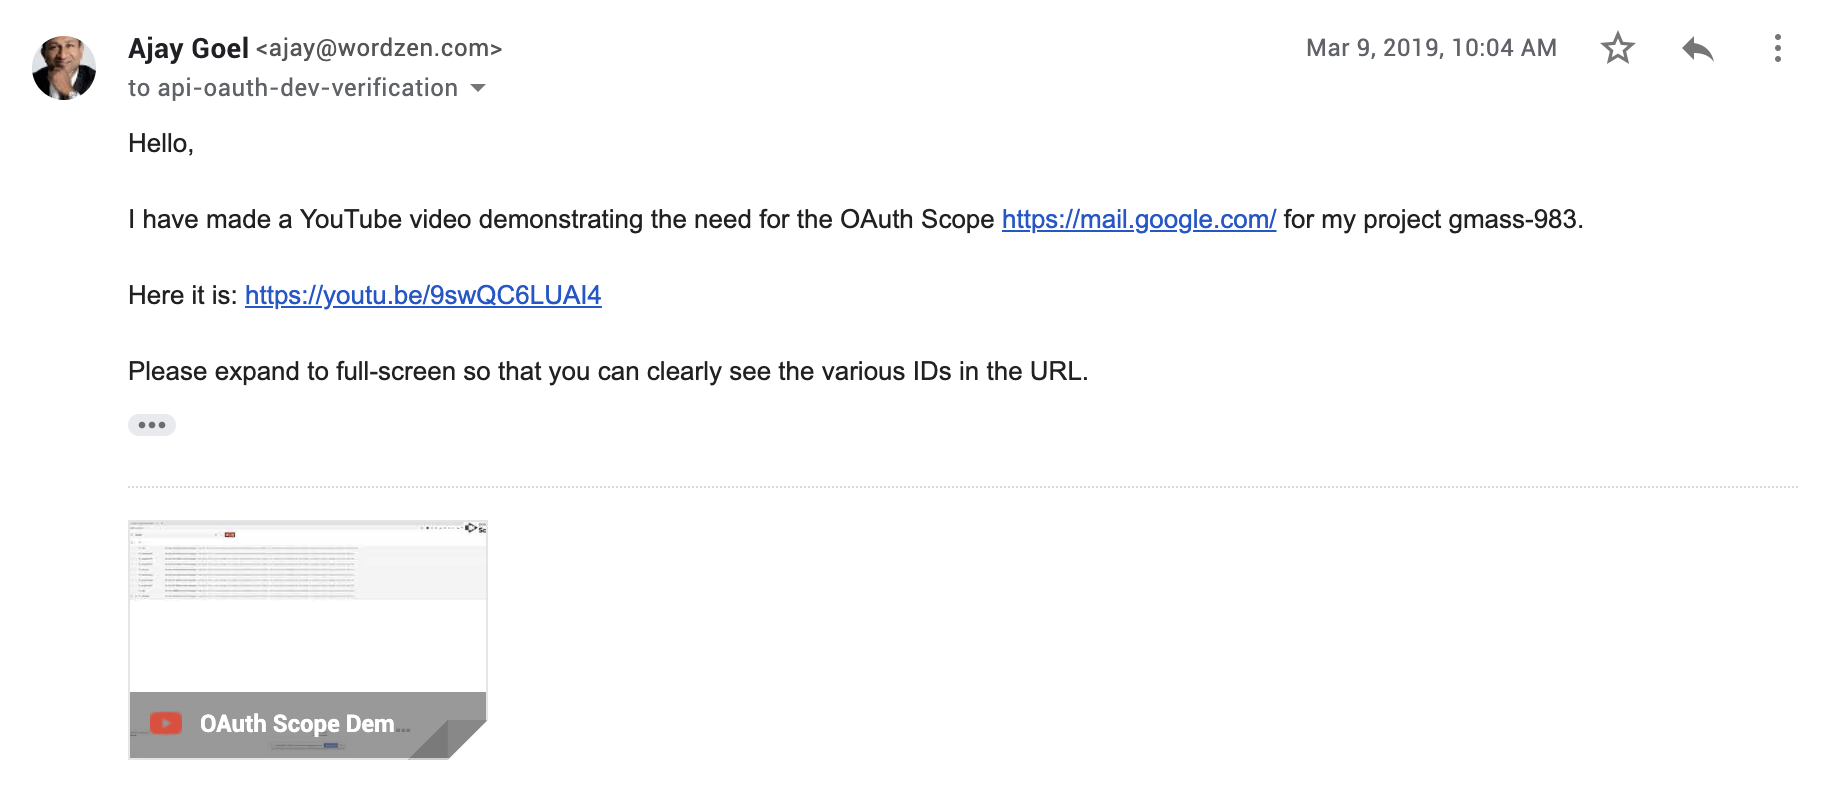 Live Updates on the Google OAuth verification process and